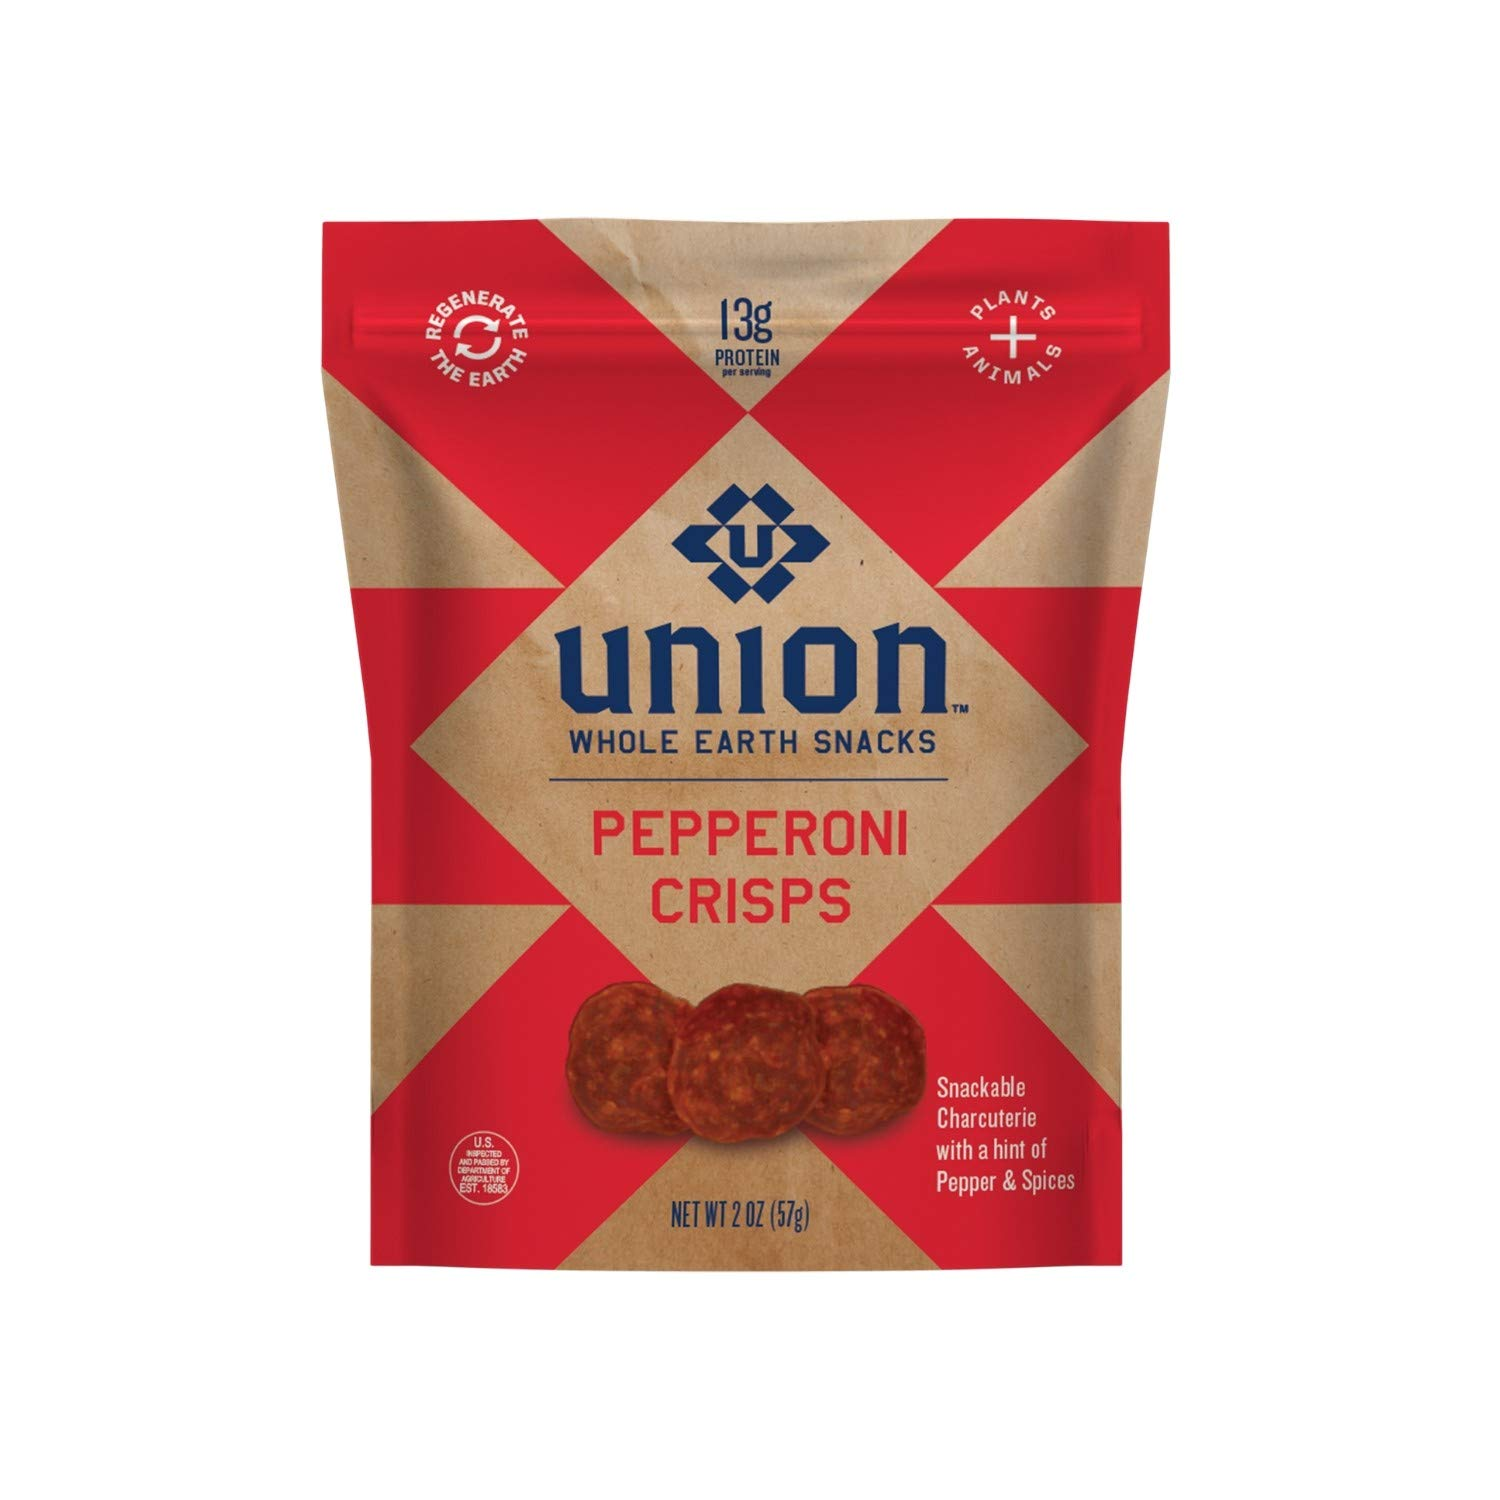 UNION Pepperoni Charcuterie Crisps - Whole Earth Snacks - Healthy Food, Keto Snacks, High Protein & Gluten Free - Paleo and Keto Diet Friendly - Pack of Two